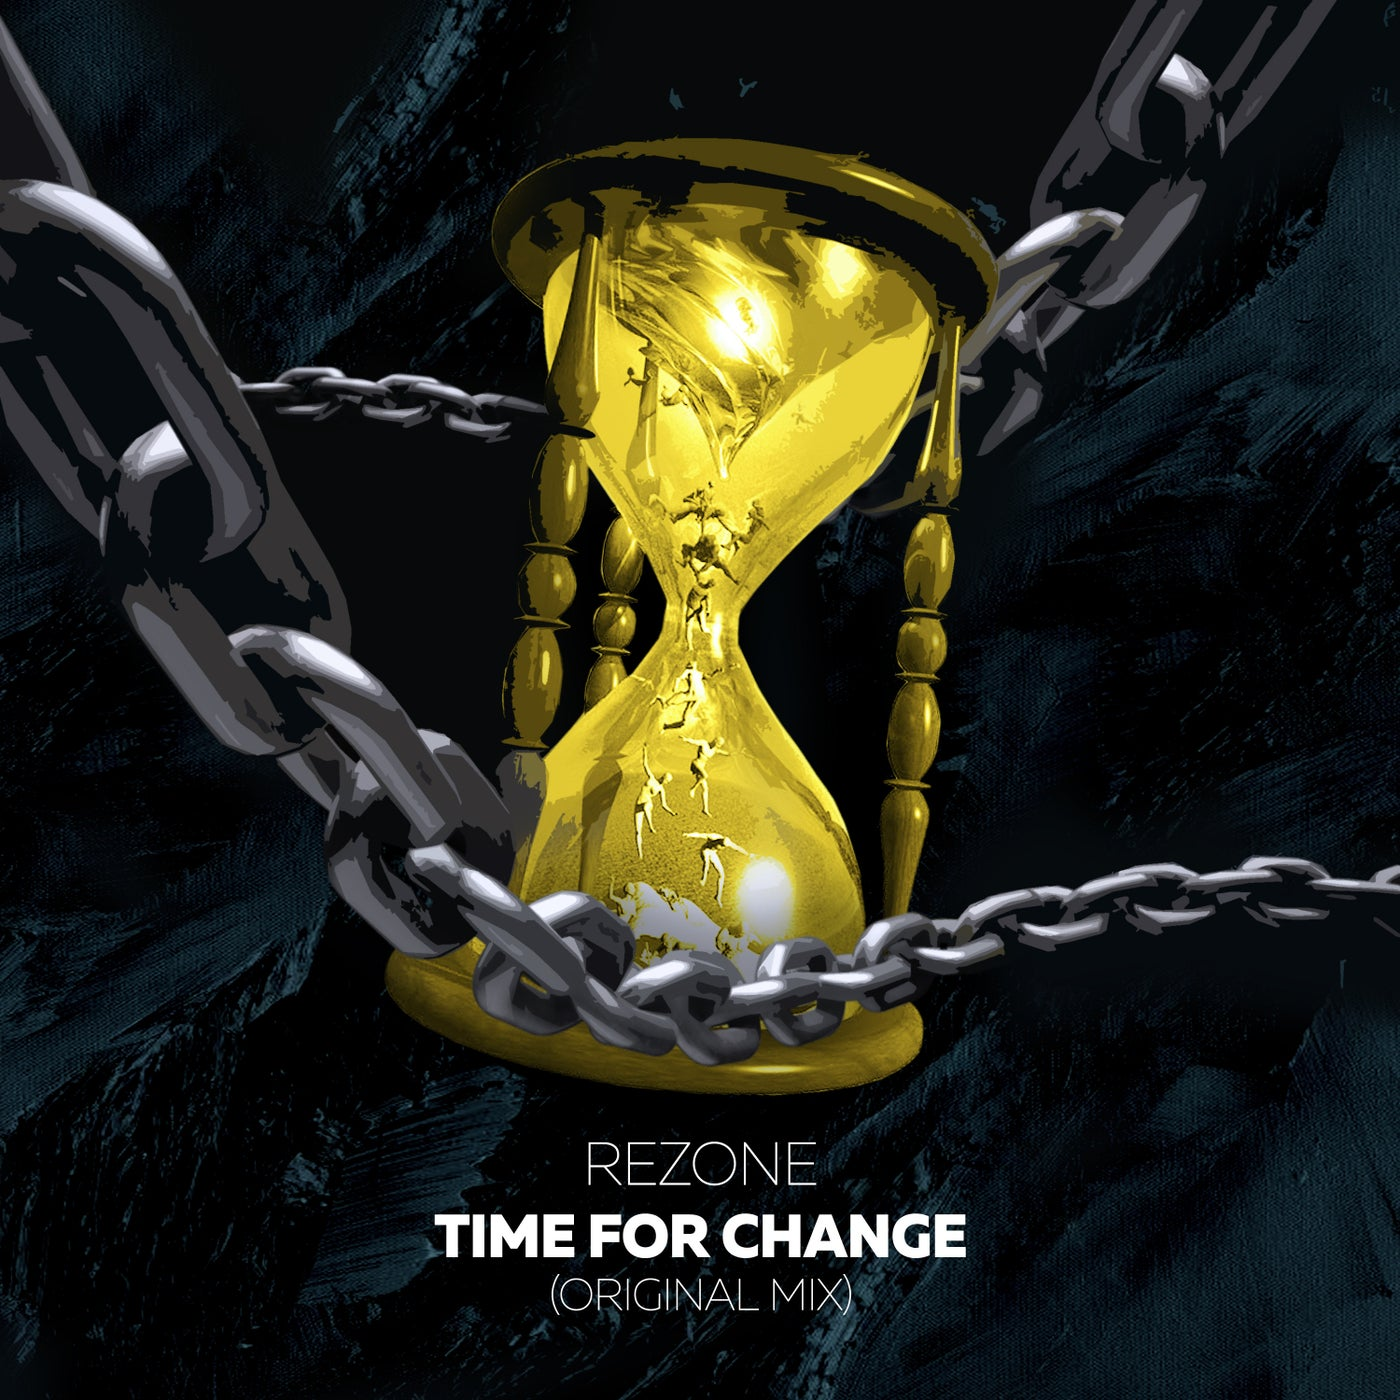 Time For Change (Original Mix)